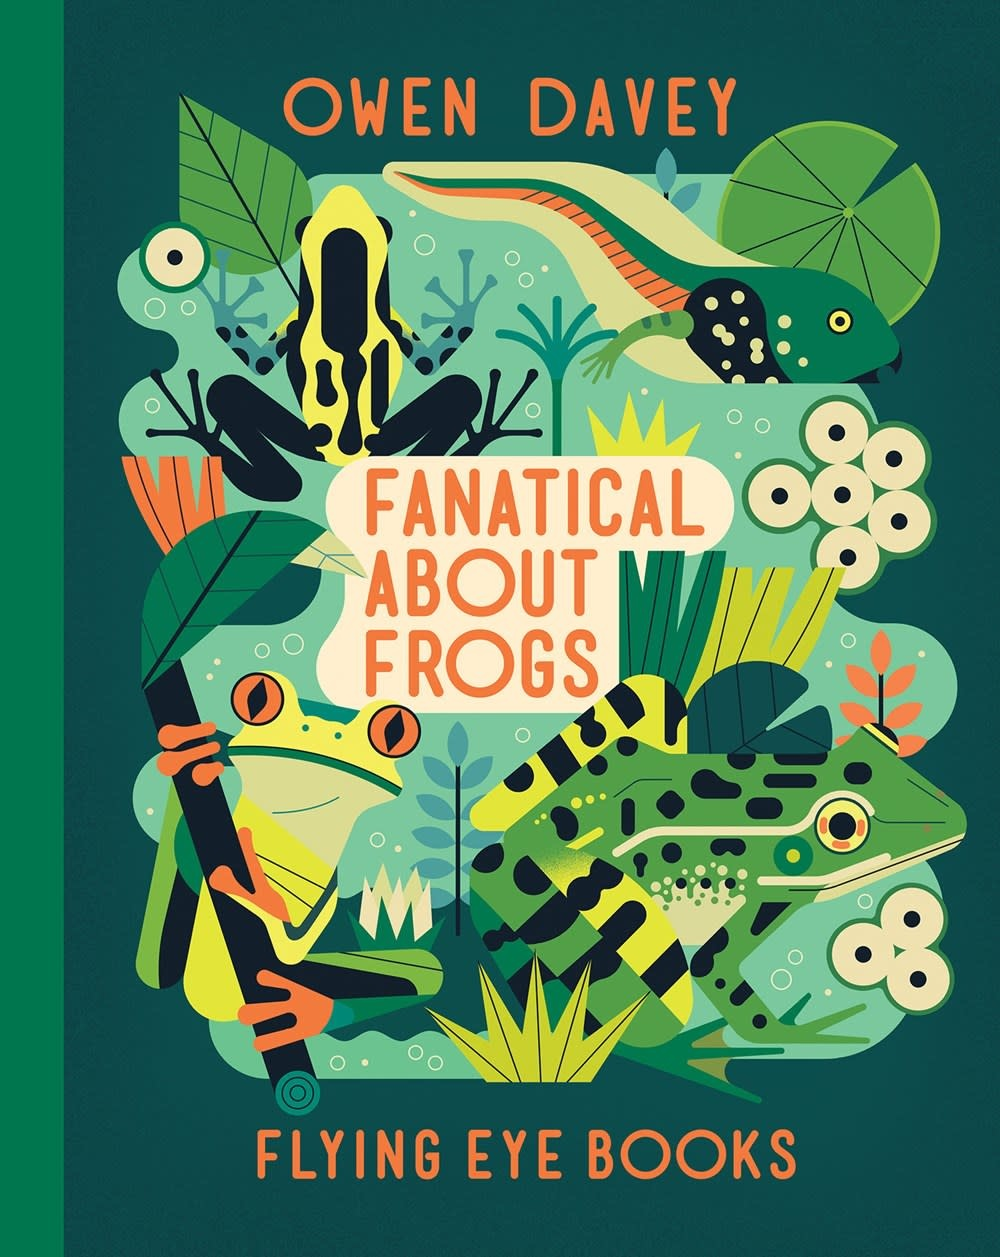 Flying Eye Books Fanatical About Frogs